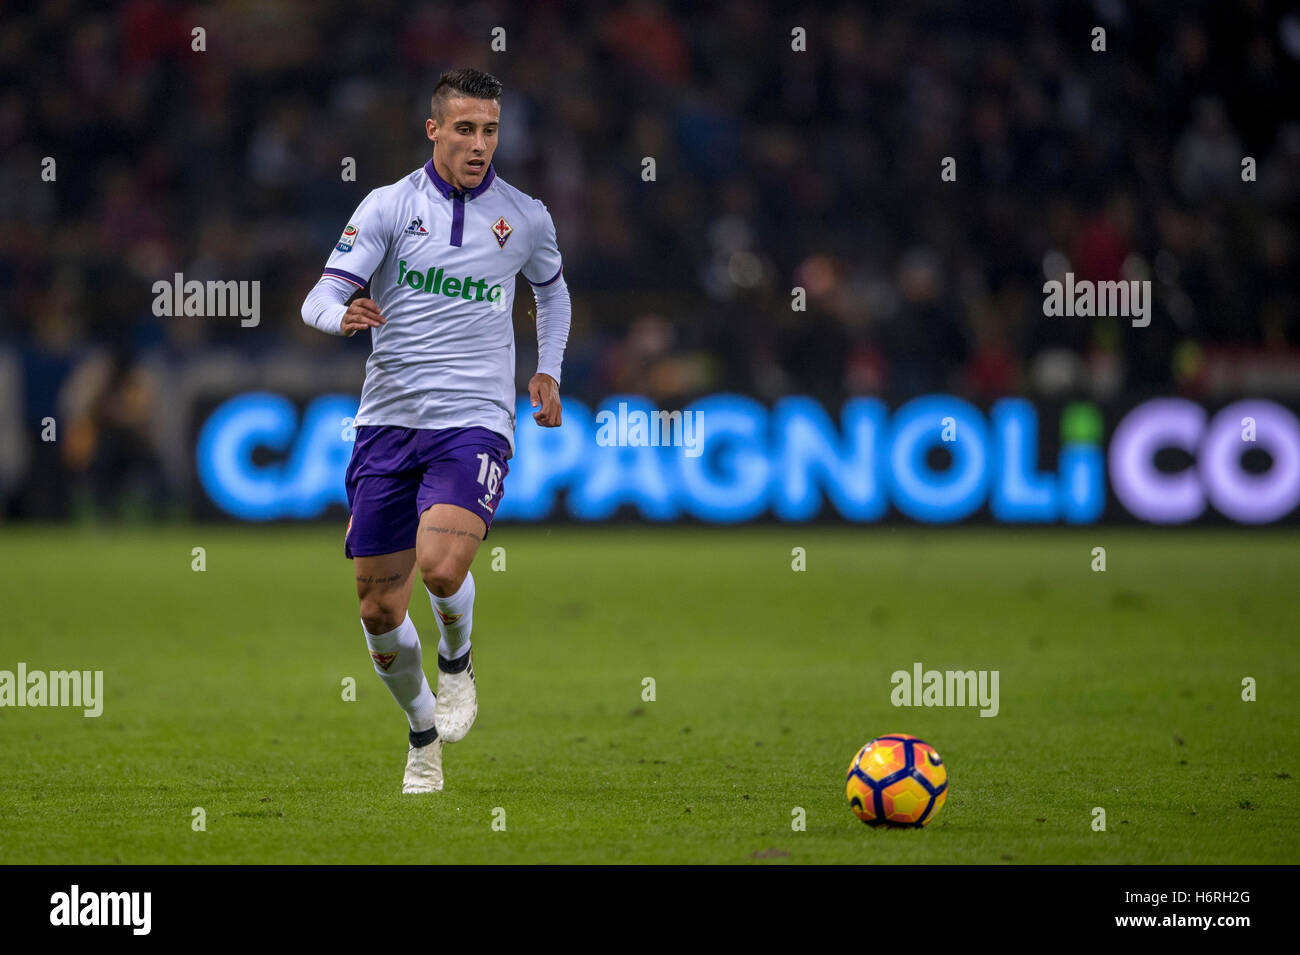 Cristian Tello Fiorentina Football